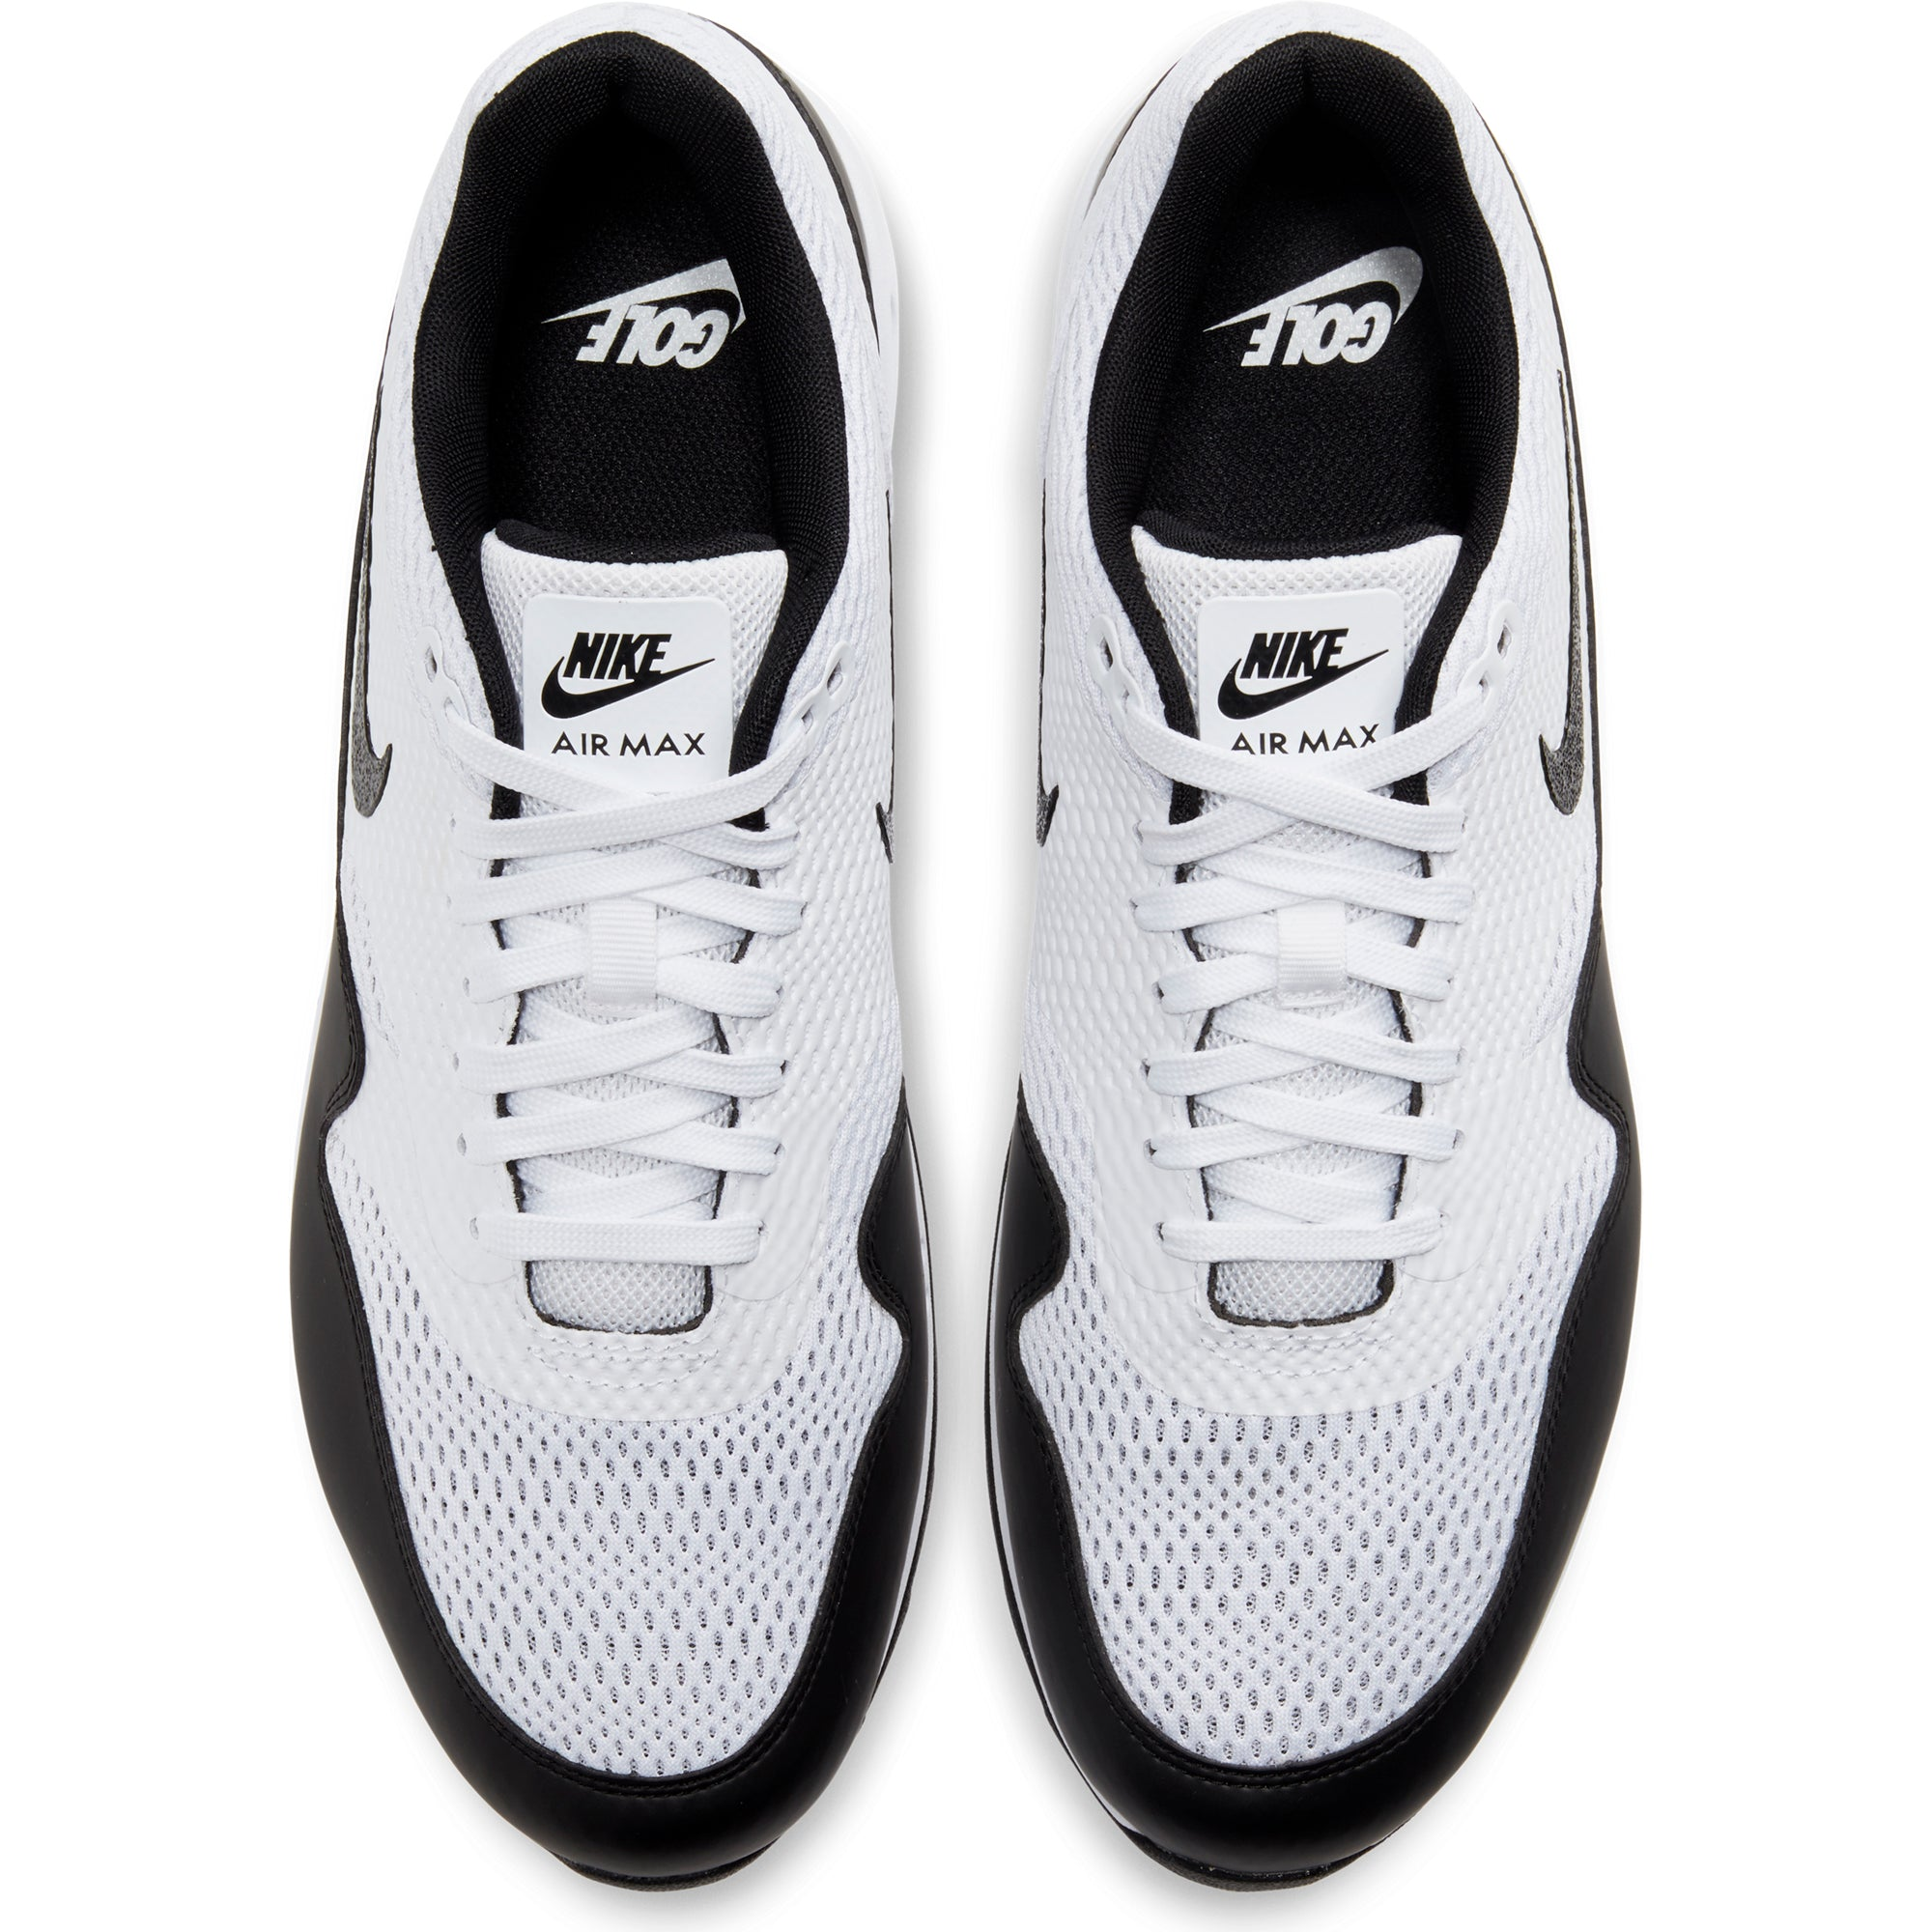 Perpetuo Golpe fuerte lila  Nike Golf Air Max 1 G Mesh Shoes CI7576 White Black 100 | Function18